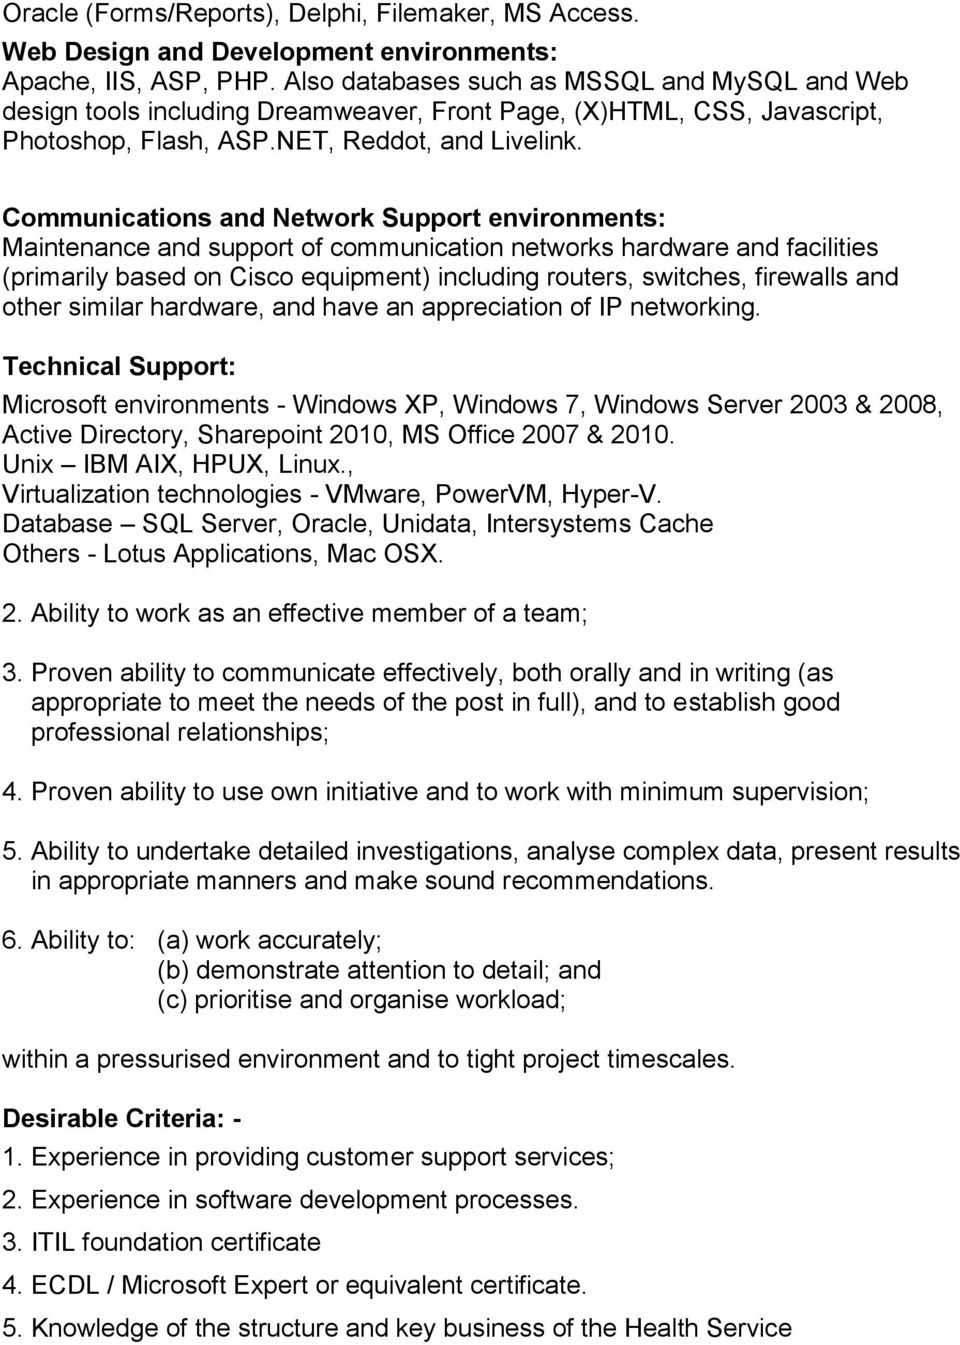 Communications and Network Support environments: Maintenance and support of communication networks hardware and facilities (primarily based on Cisco equipment) including routers, switches, firewalls